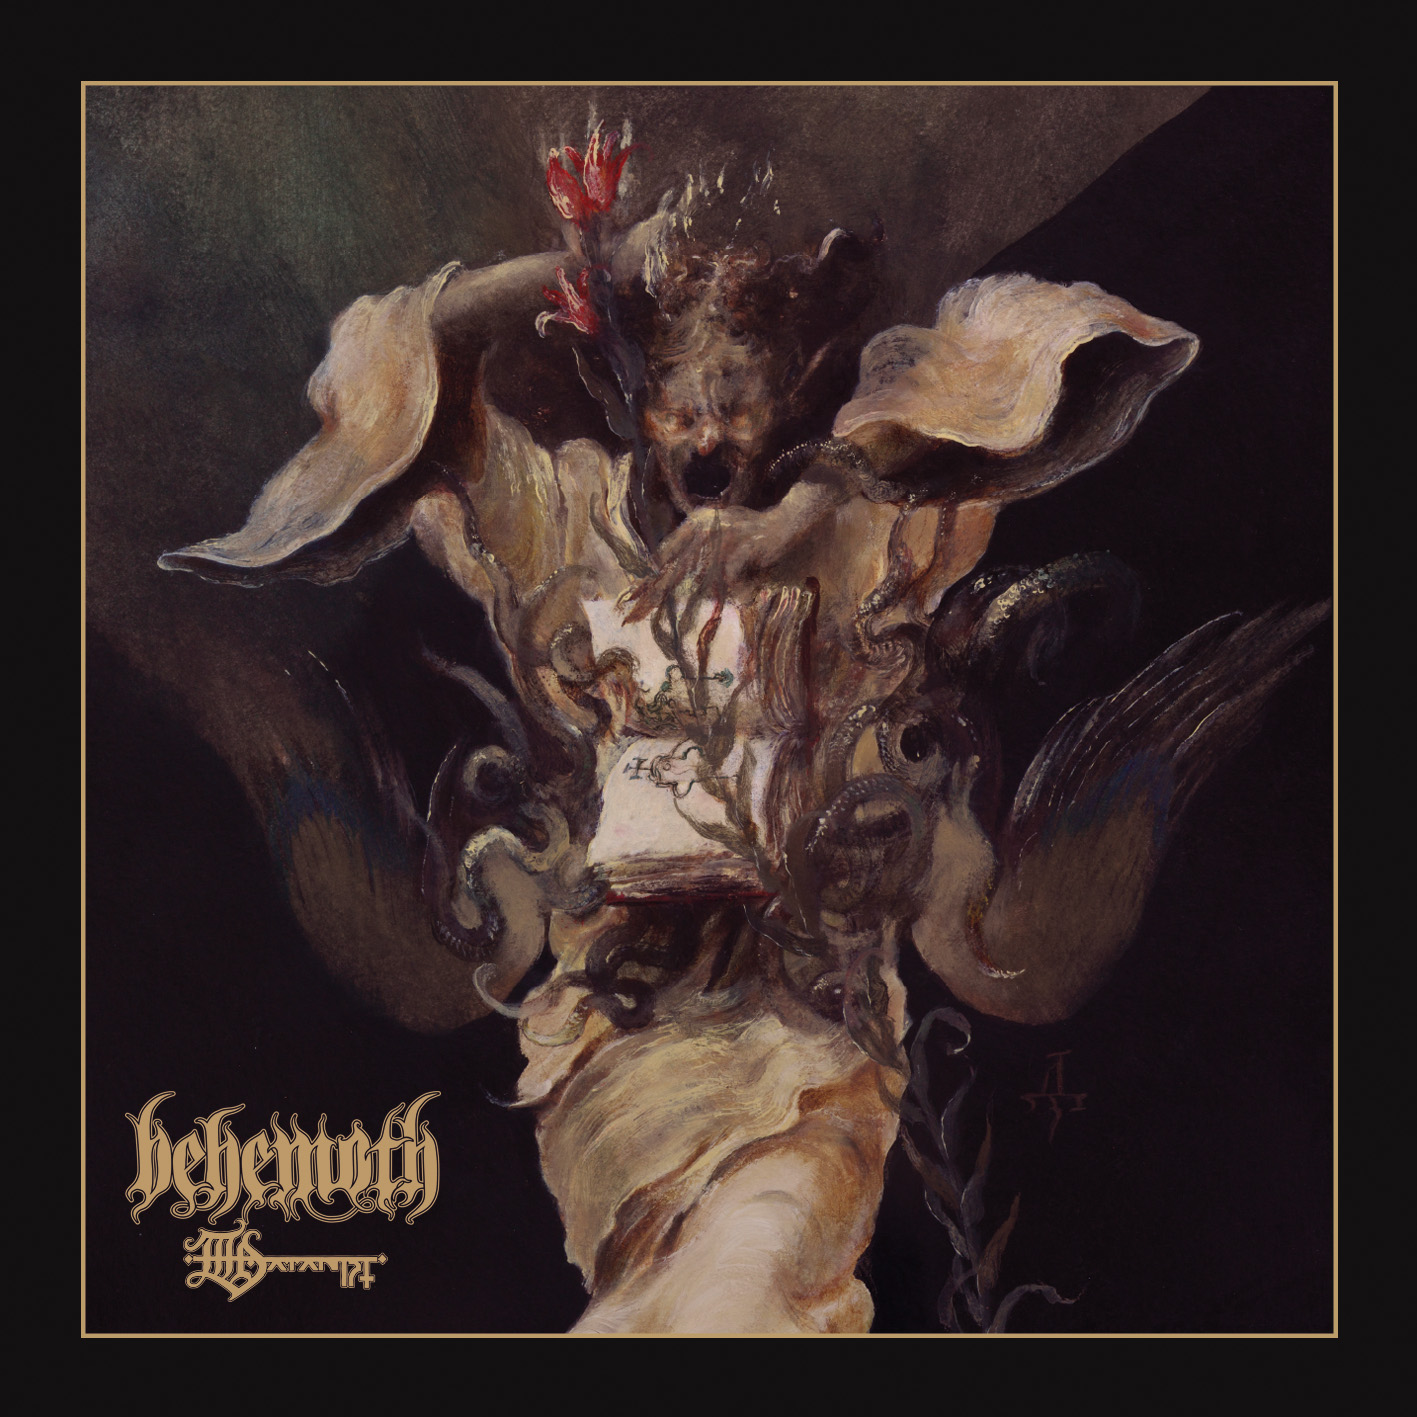 Behemoth The Satanist Album Review